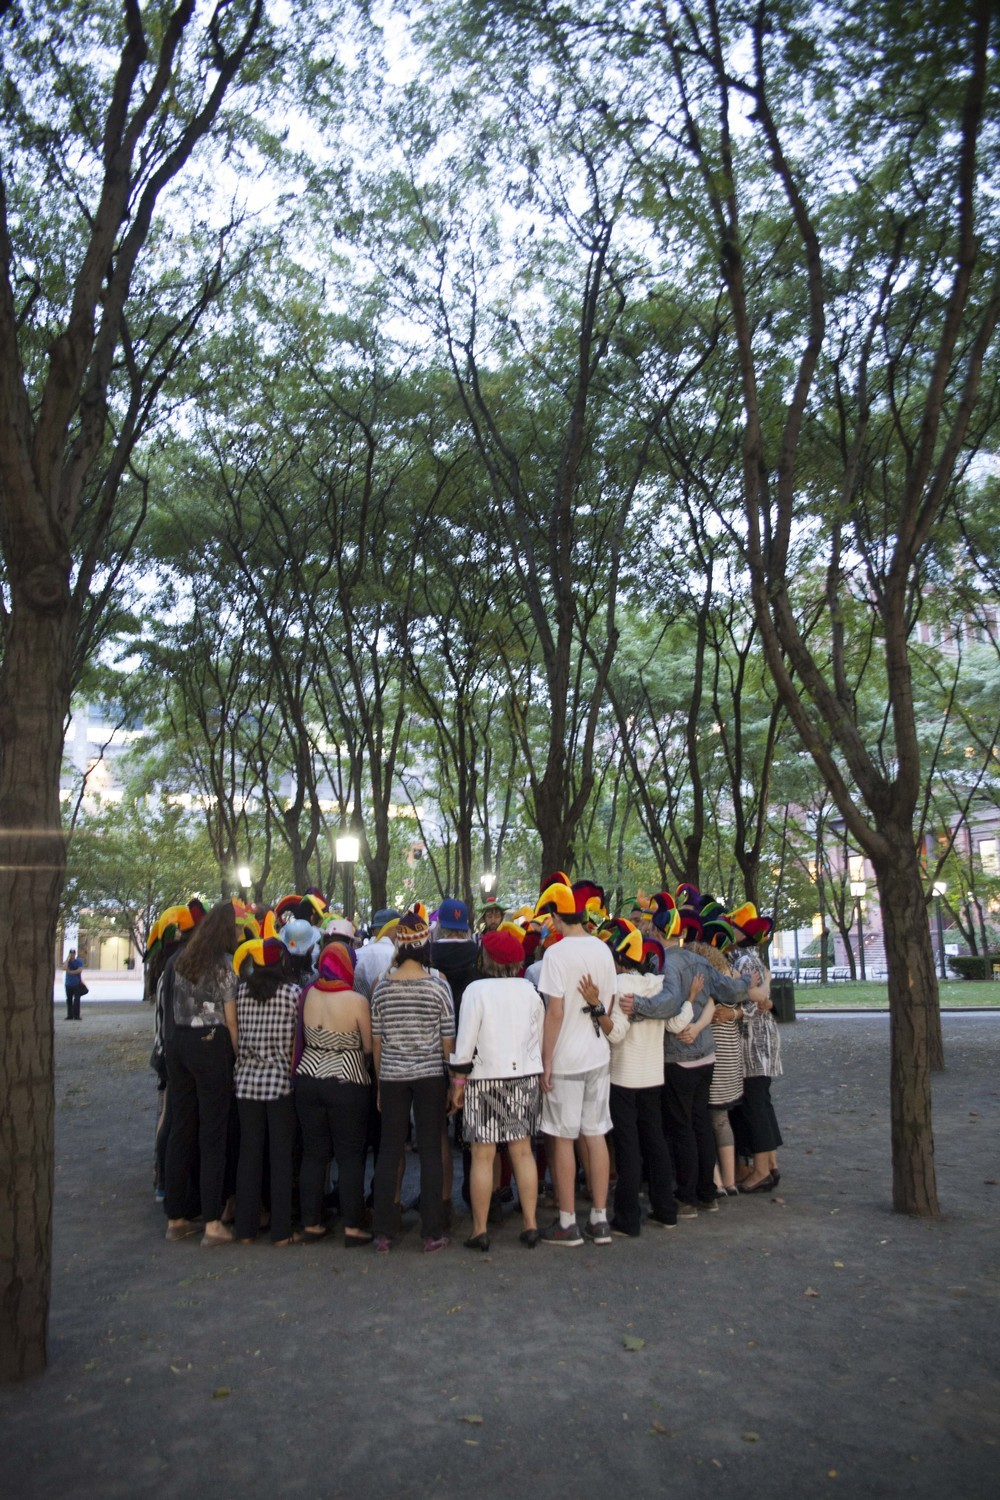 At sundown, nearly 100 members of the public gathered in Metrotech Plaza for the climax of the penultimate day of